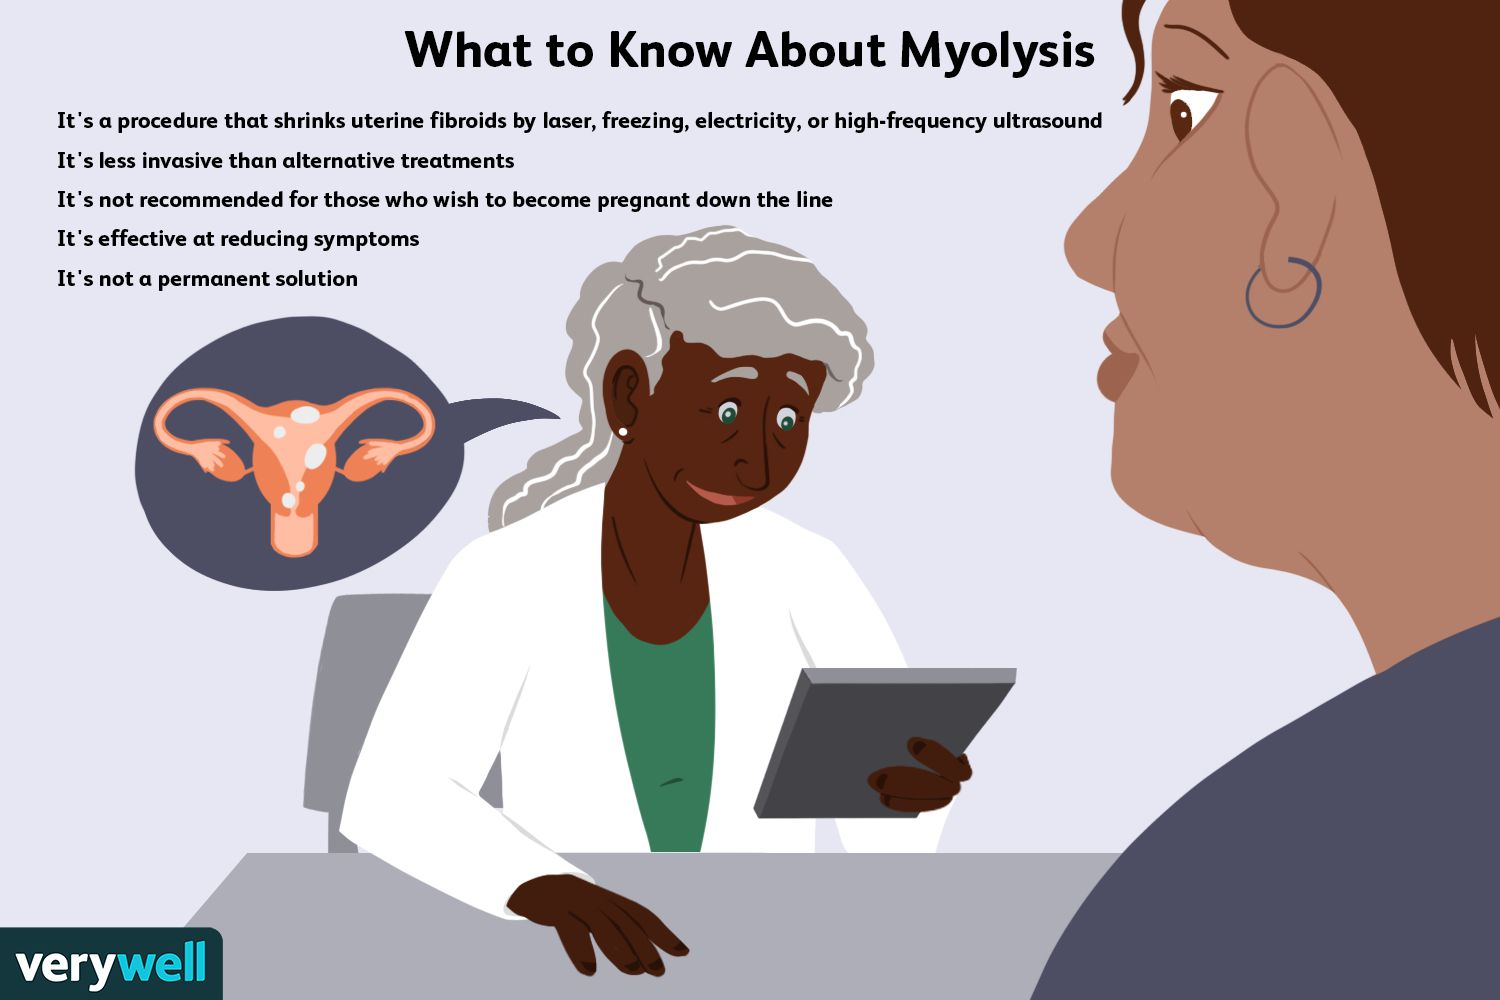 What to Know About Myolysis